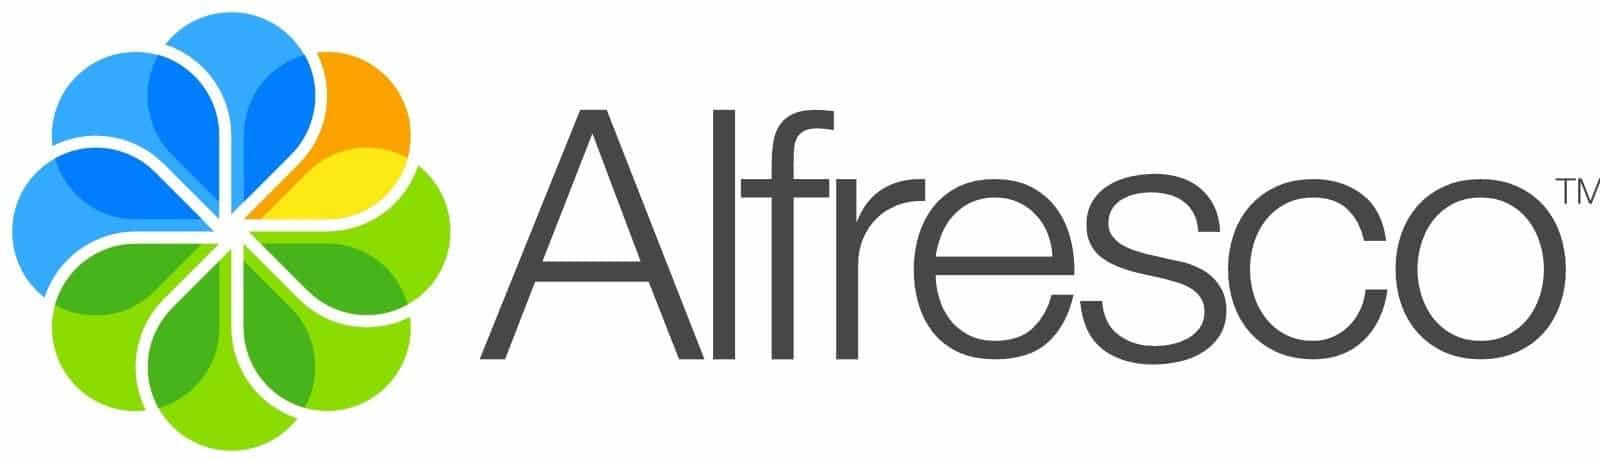 alfresco_cms_logo